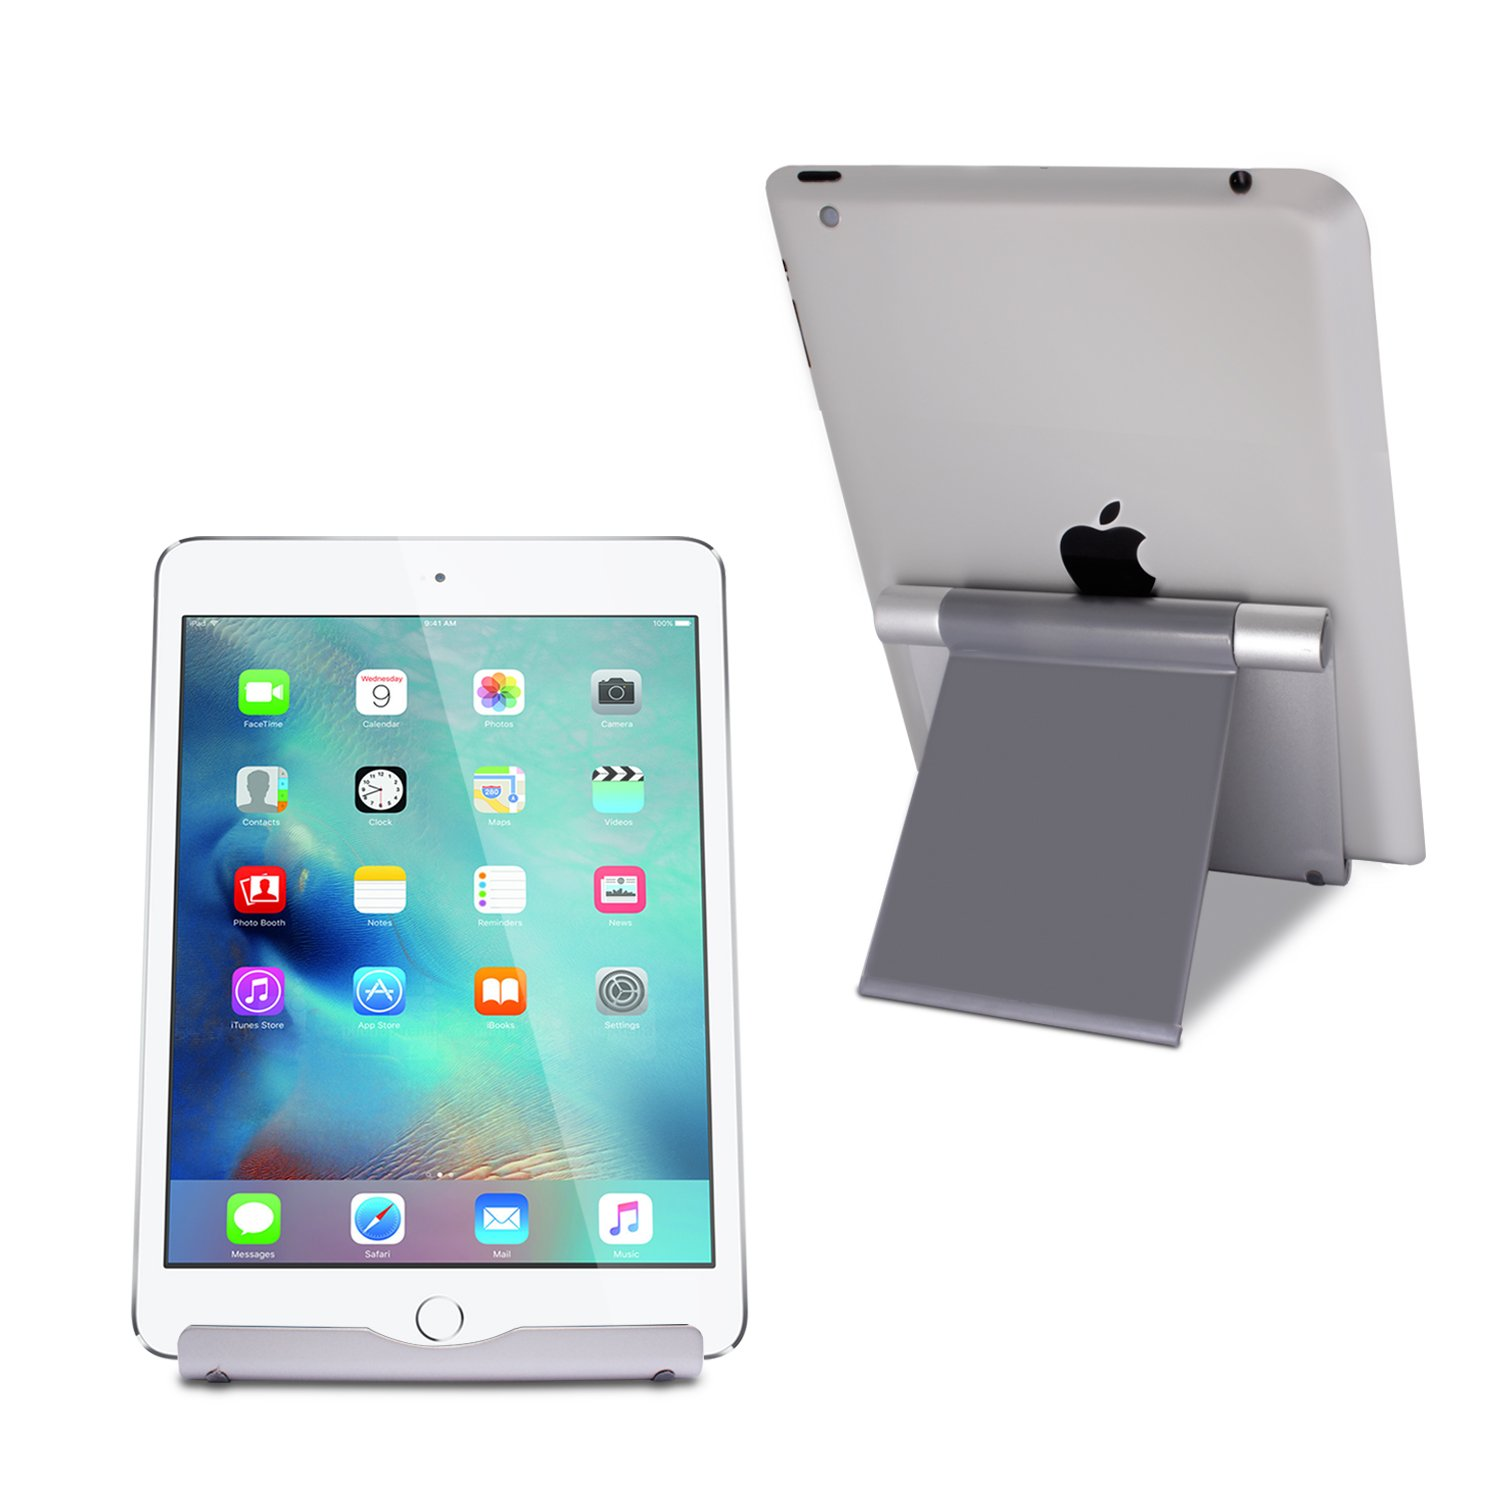 TechMatte iPad Pro Stand, Multi-Angle Aluminum Holder for iPad Pro 12.9 10.5 9.7 inch Tablets, E-readers and Smartphones,Nintendo Switch - XL-Size Stand by TechMatte (Image #4)